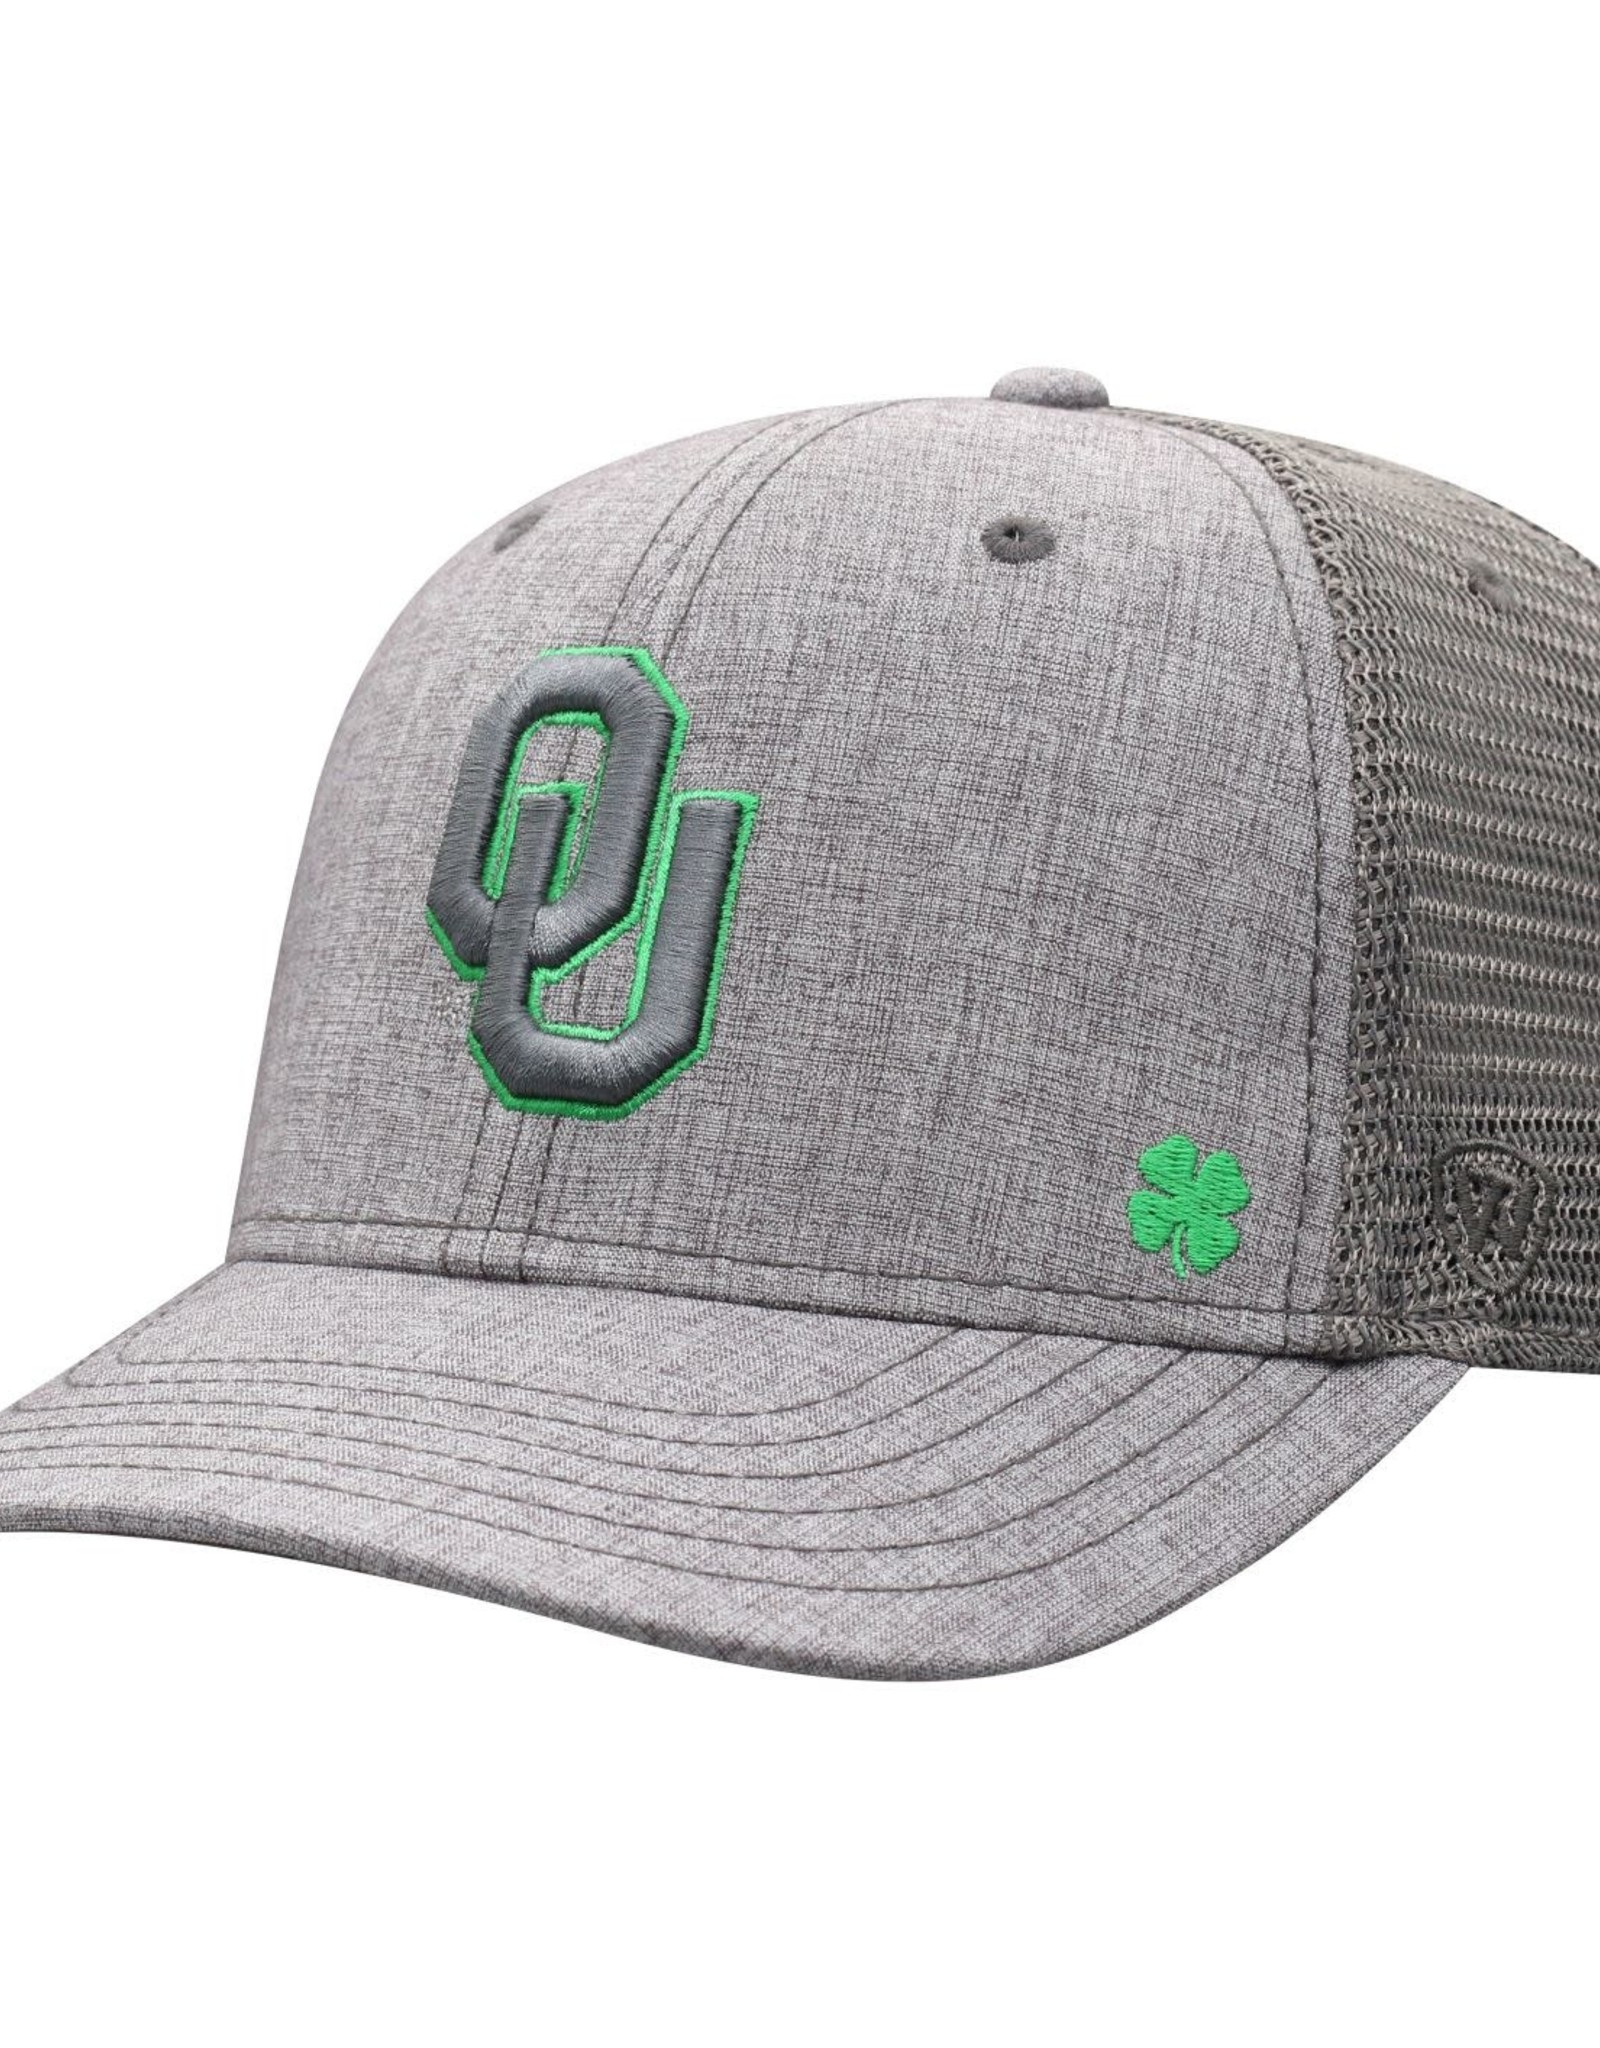 Top of the World TOW Oklahoma St Patty Adjustable Two-Tone Cap